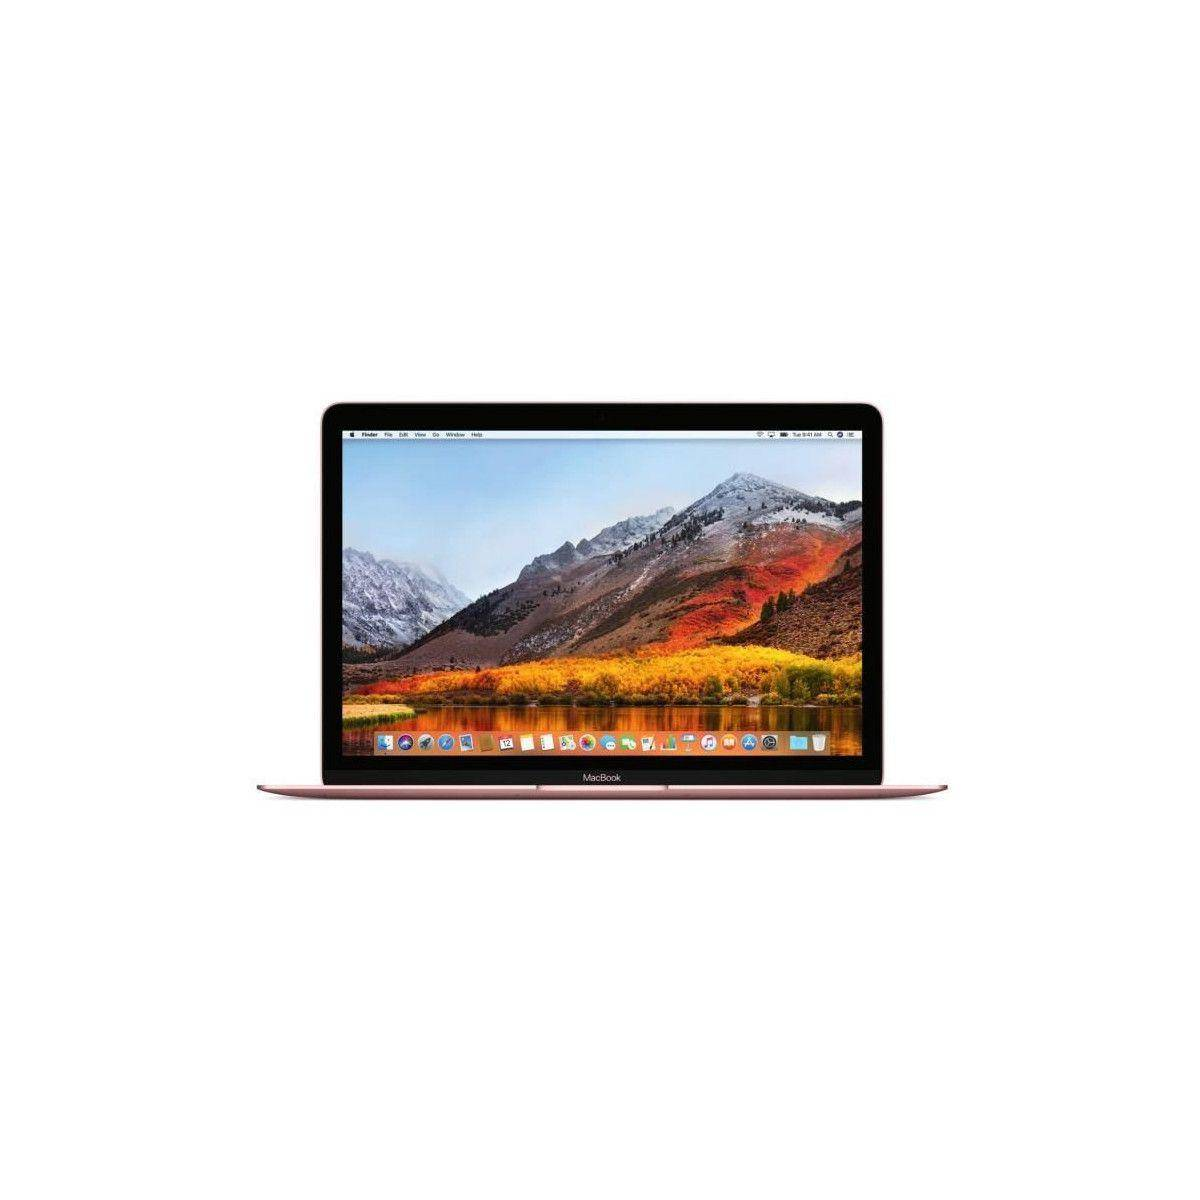 APPLE MacBook MNYN2FN/A - 12 pouces Retina - Intel Core i5 - RAM 8Go - Stockage 512Go SSD - Rose Gold